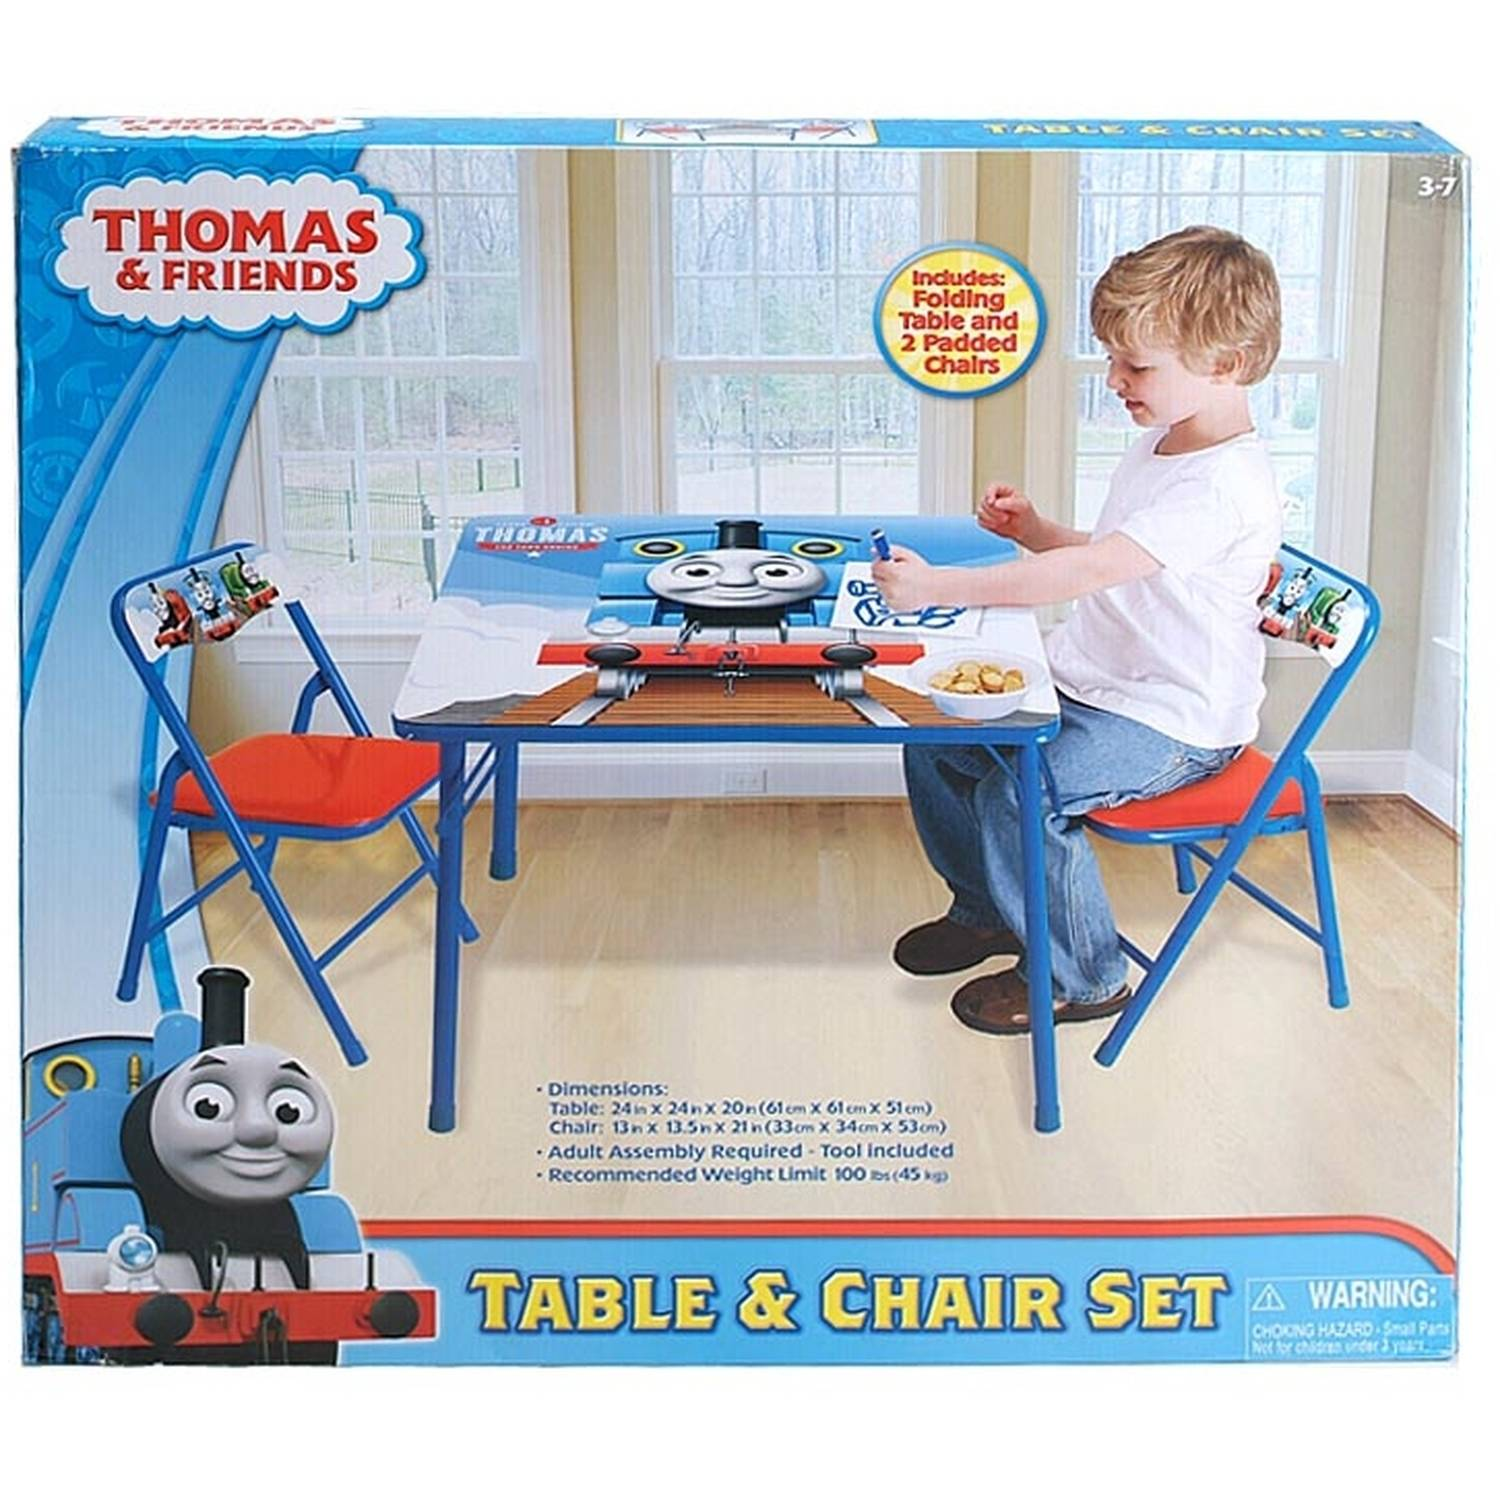 Thomas And Friends Table Train Set u0026 Uncategorized Thomas The Train ... Thomas And Friends Table Train Set Uncategorized Thomas The Train  sc 1 st  Best Image Engine & Inspiring Activity Table Train Set Photos - Best Image Engine ...